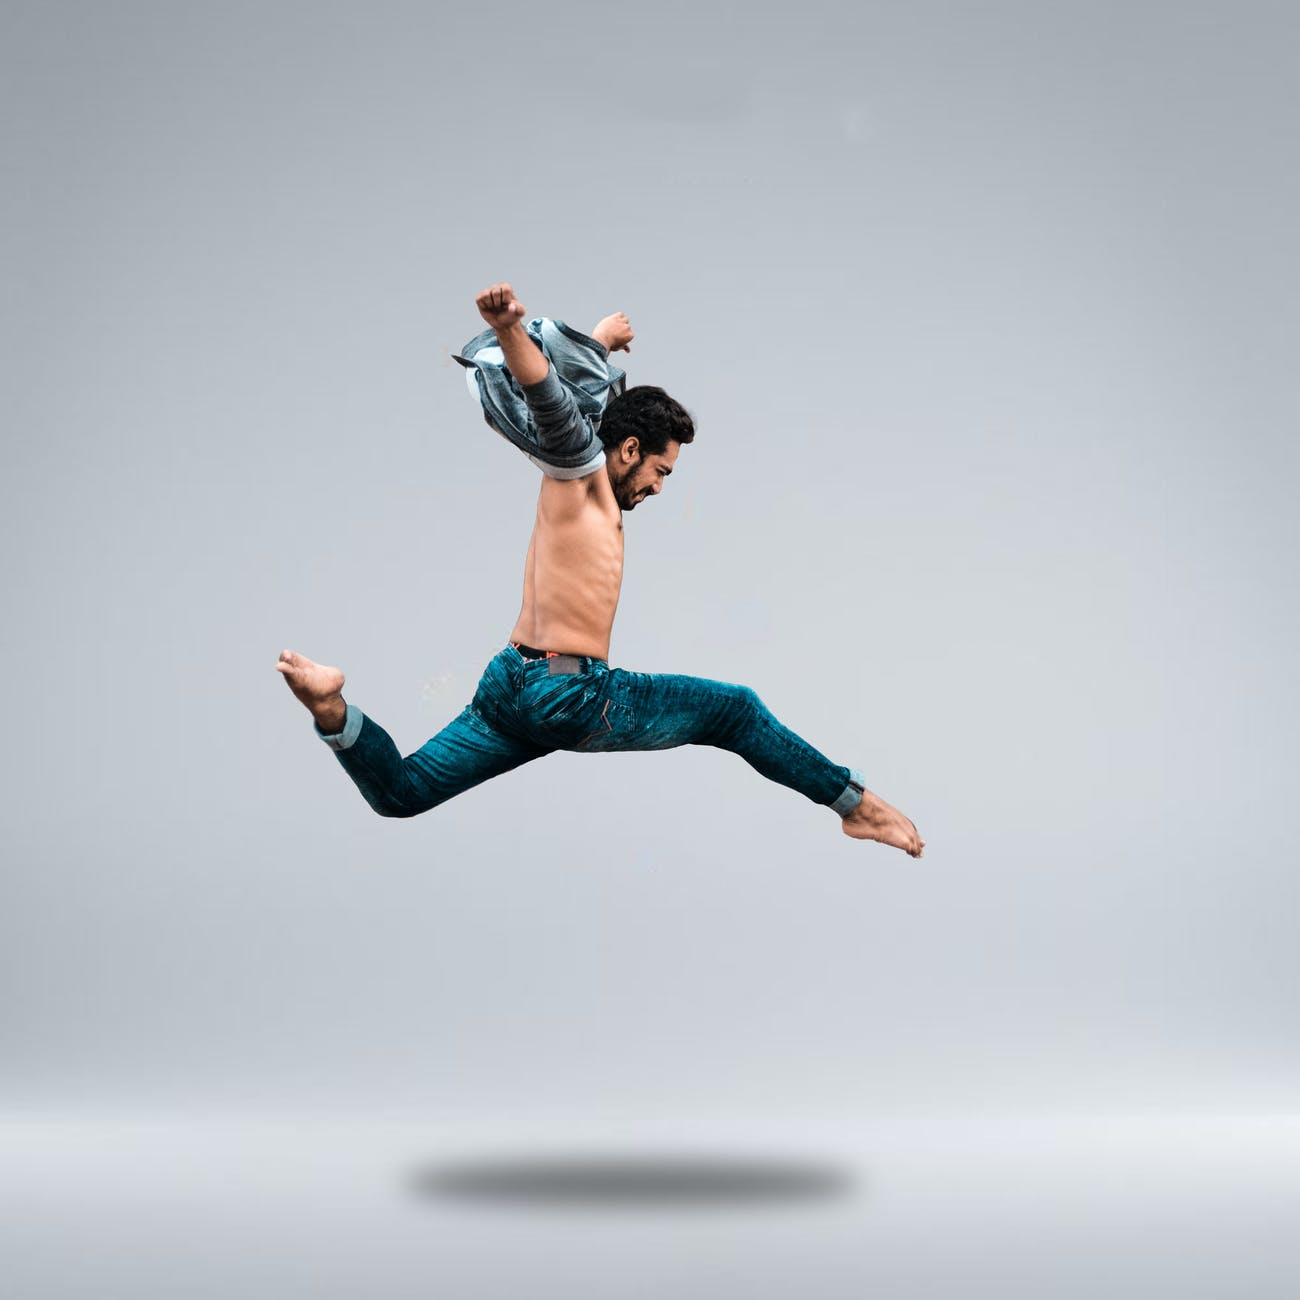 Ballet dancer in the middle of a high jump